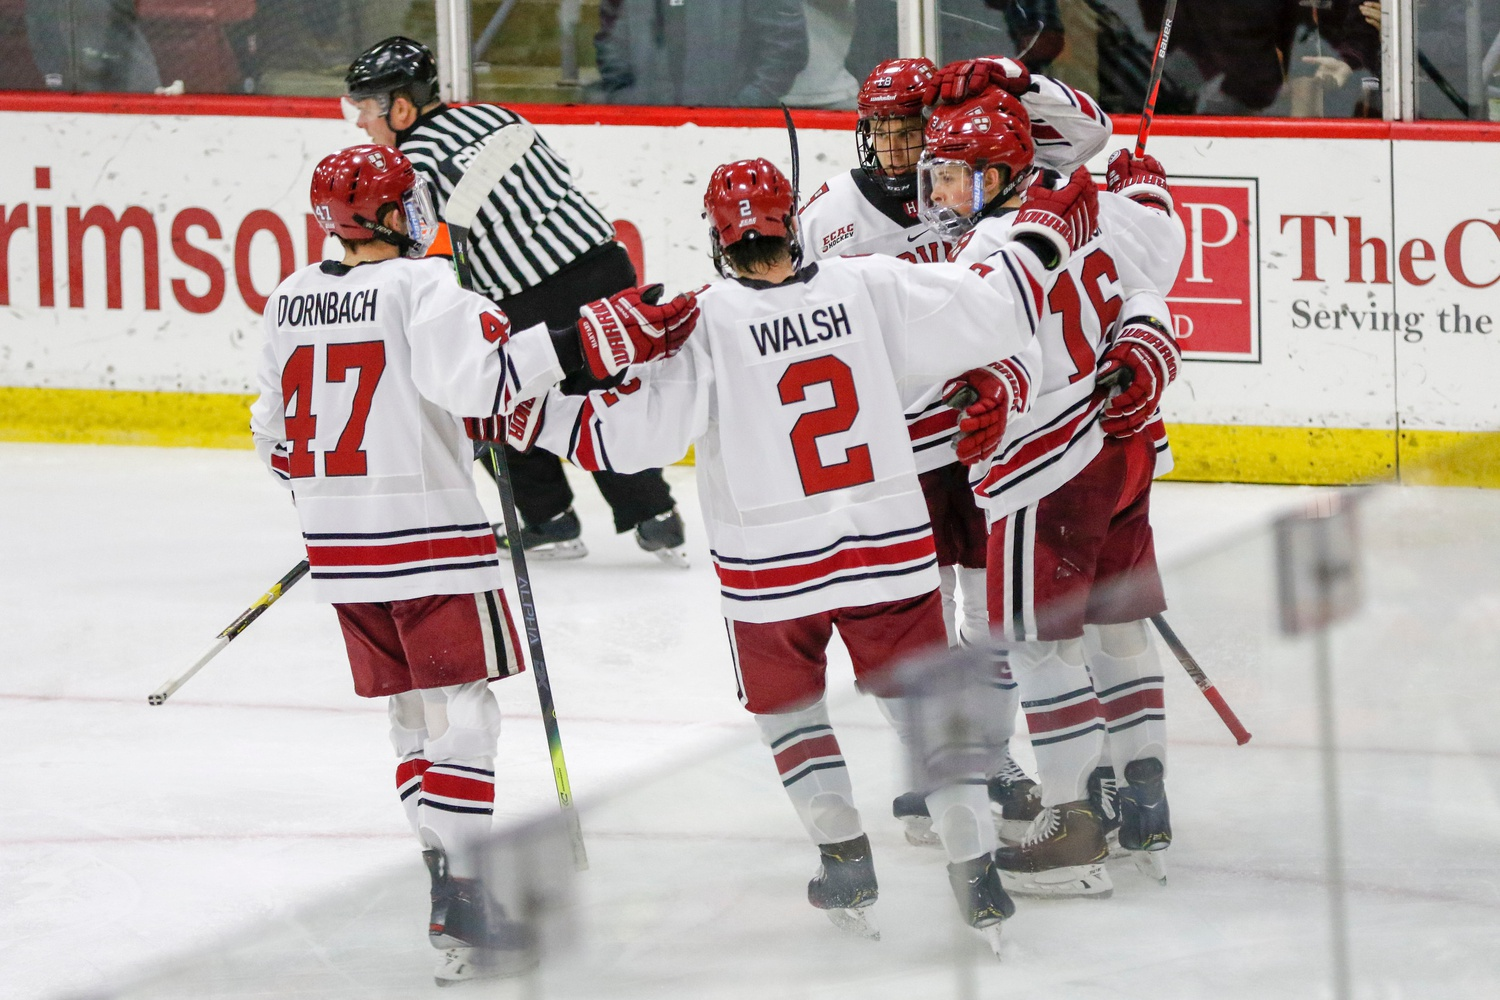 The Crimson's top powerplay unit, sitting eighth in the nation at 26.0 percent effective, can make a team pay.